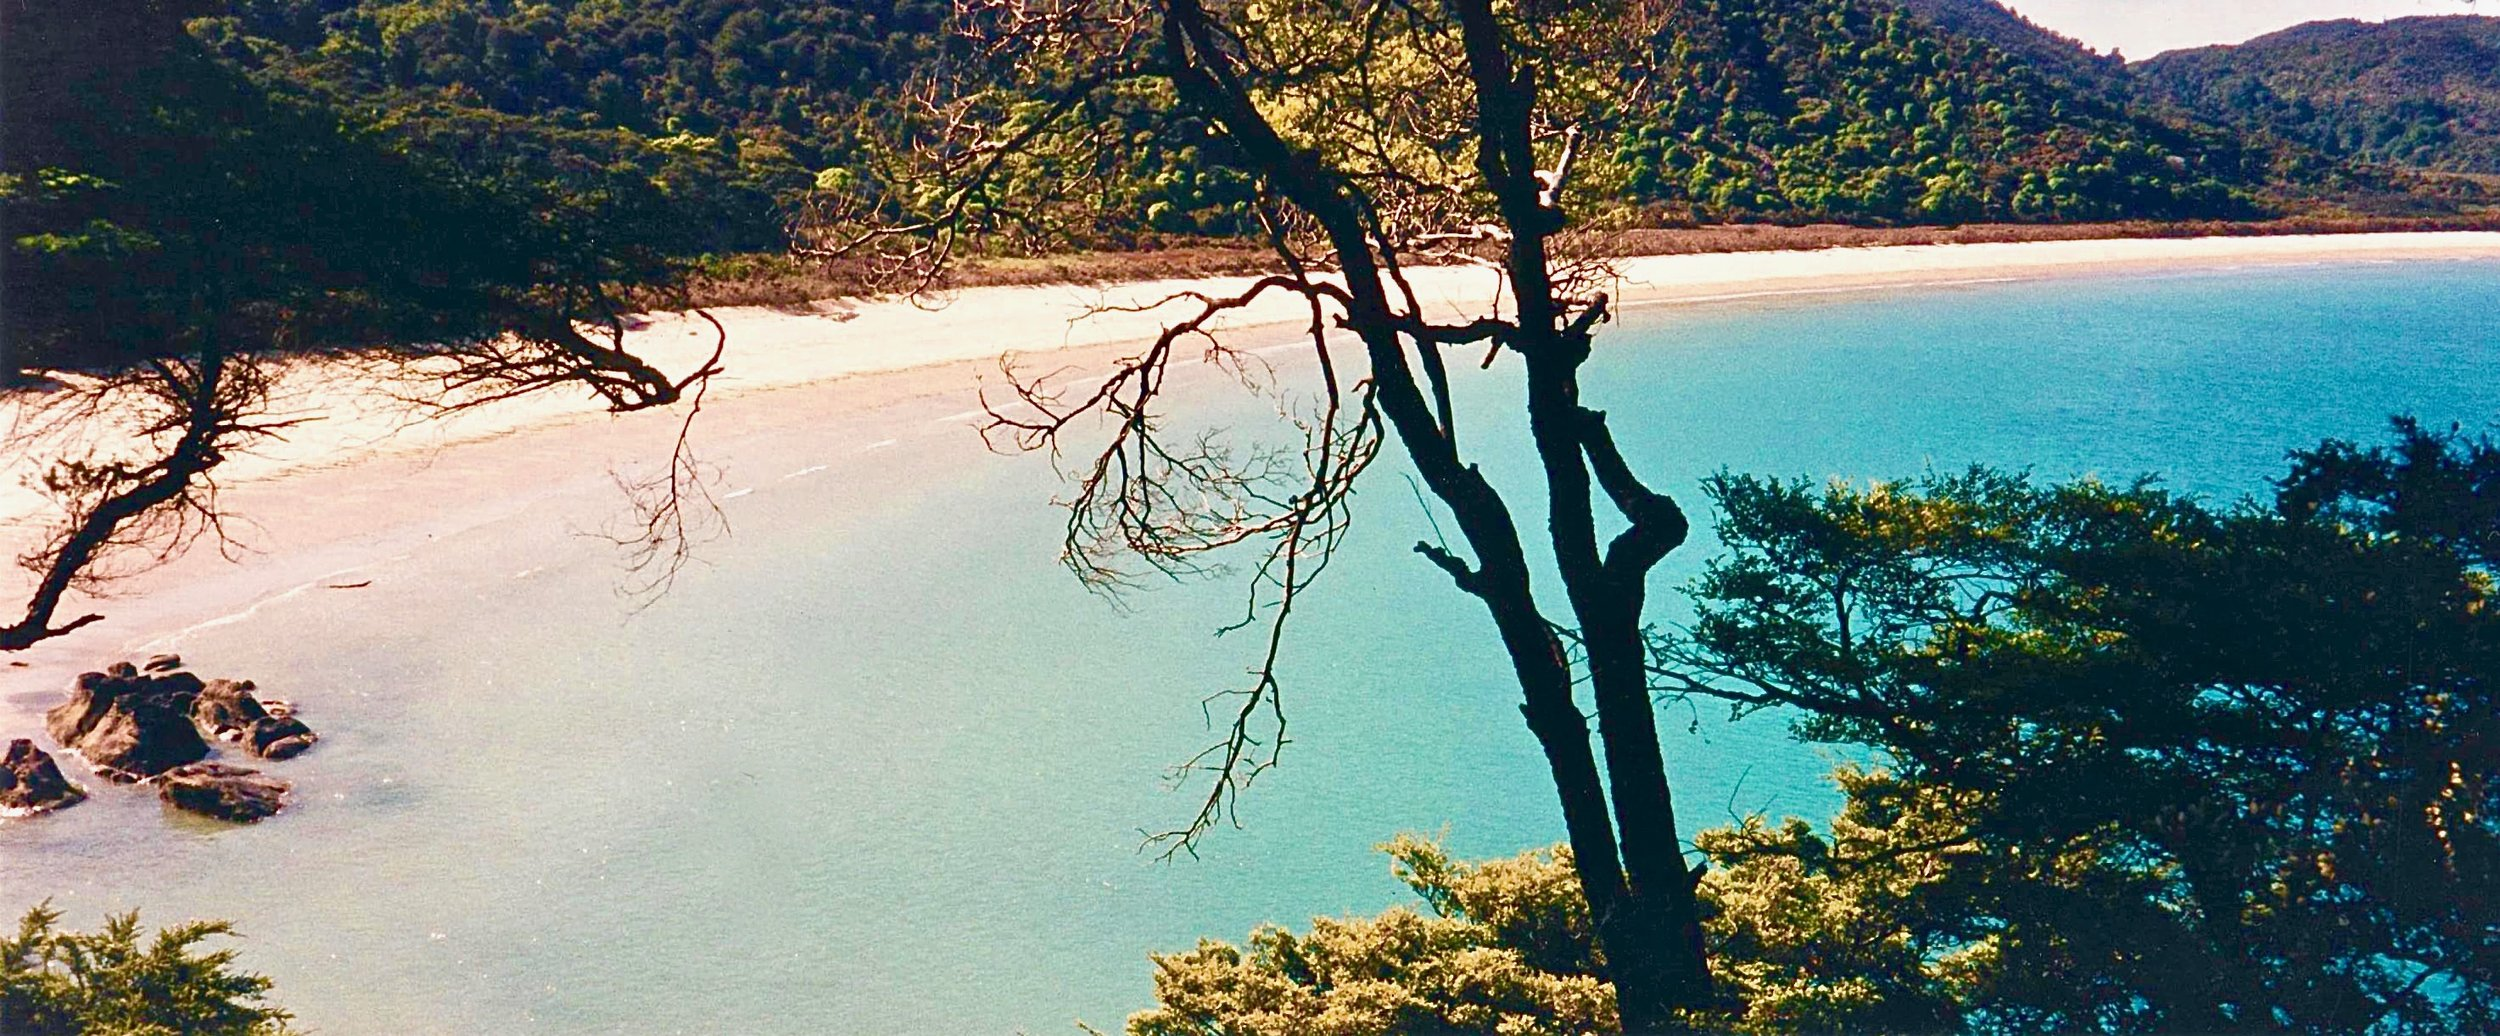 NZ Abel Tasmin trek beach thru trees 2.jpg